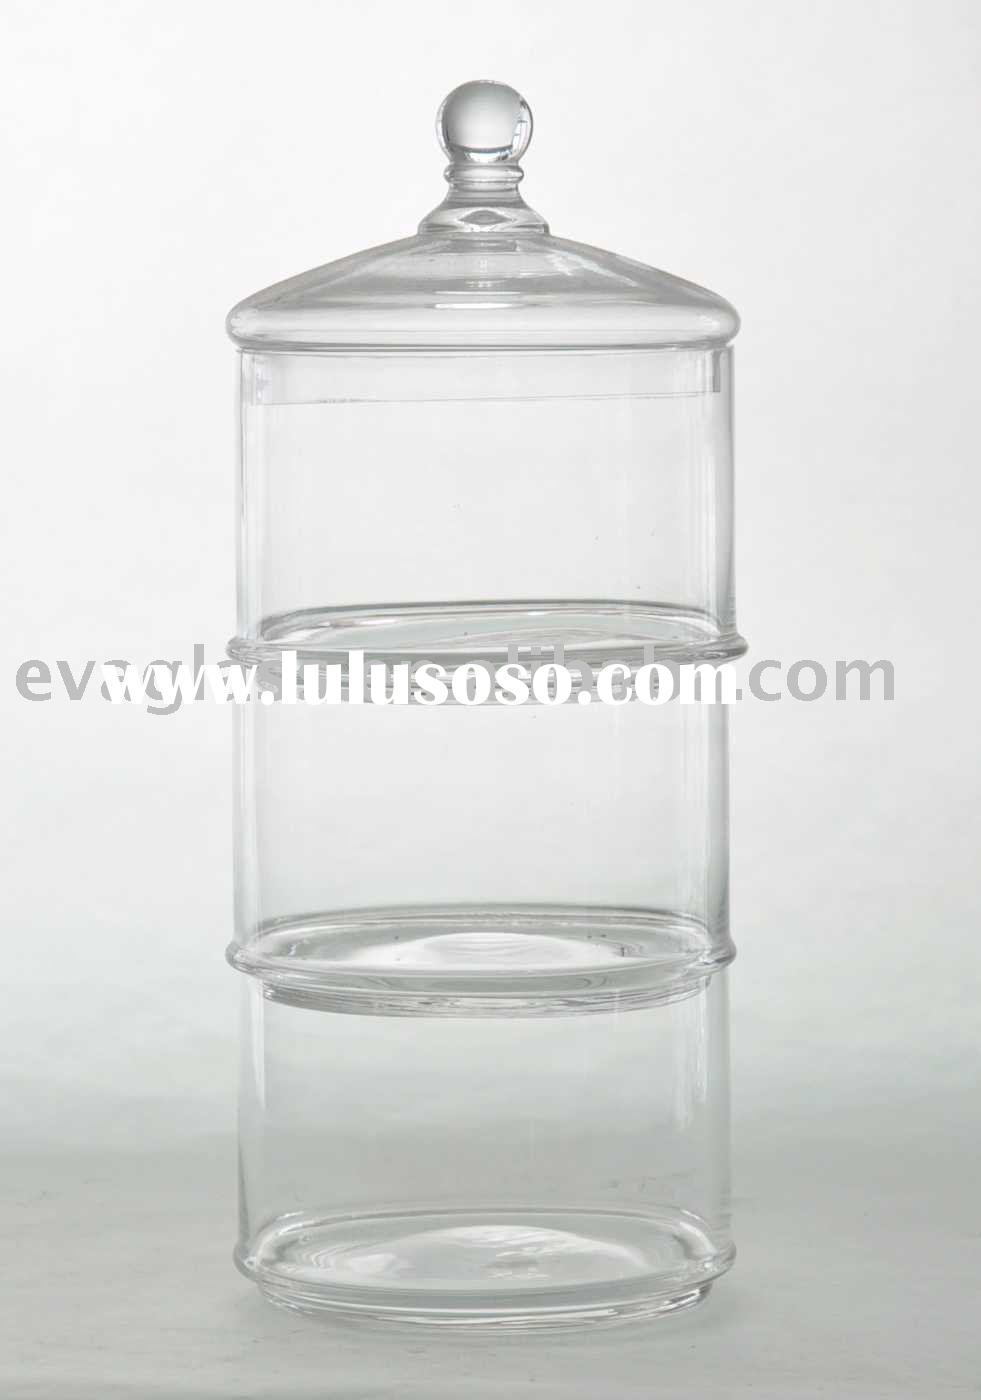 handmade glass storage jar glass food container